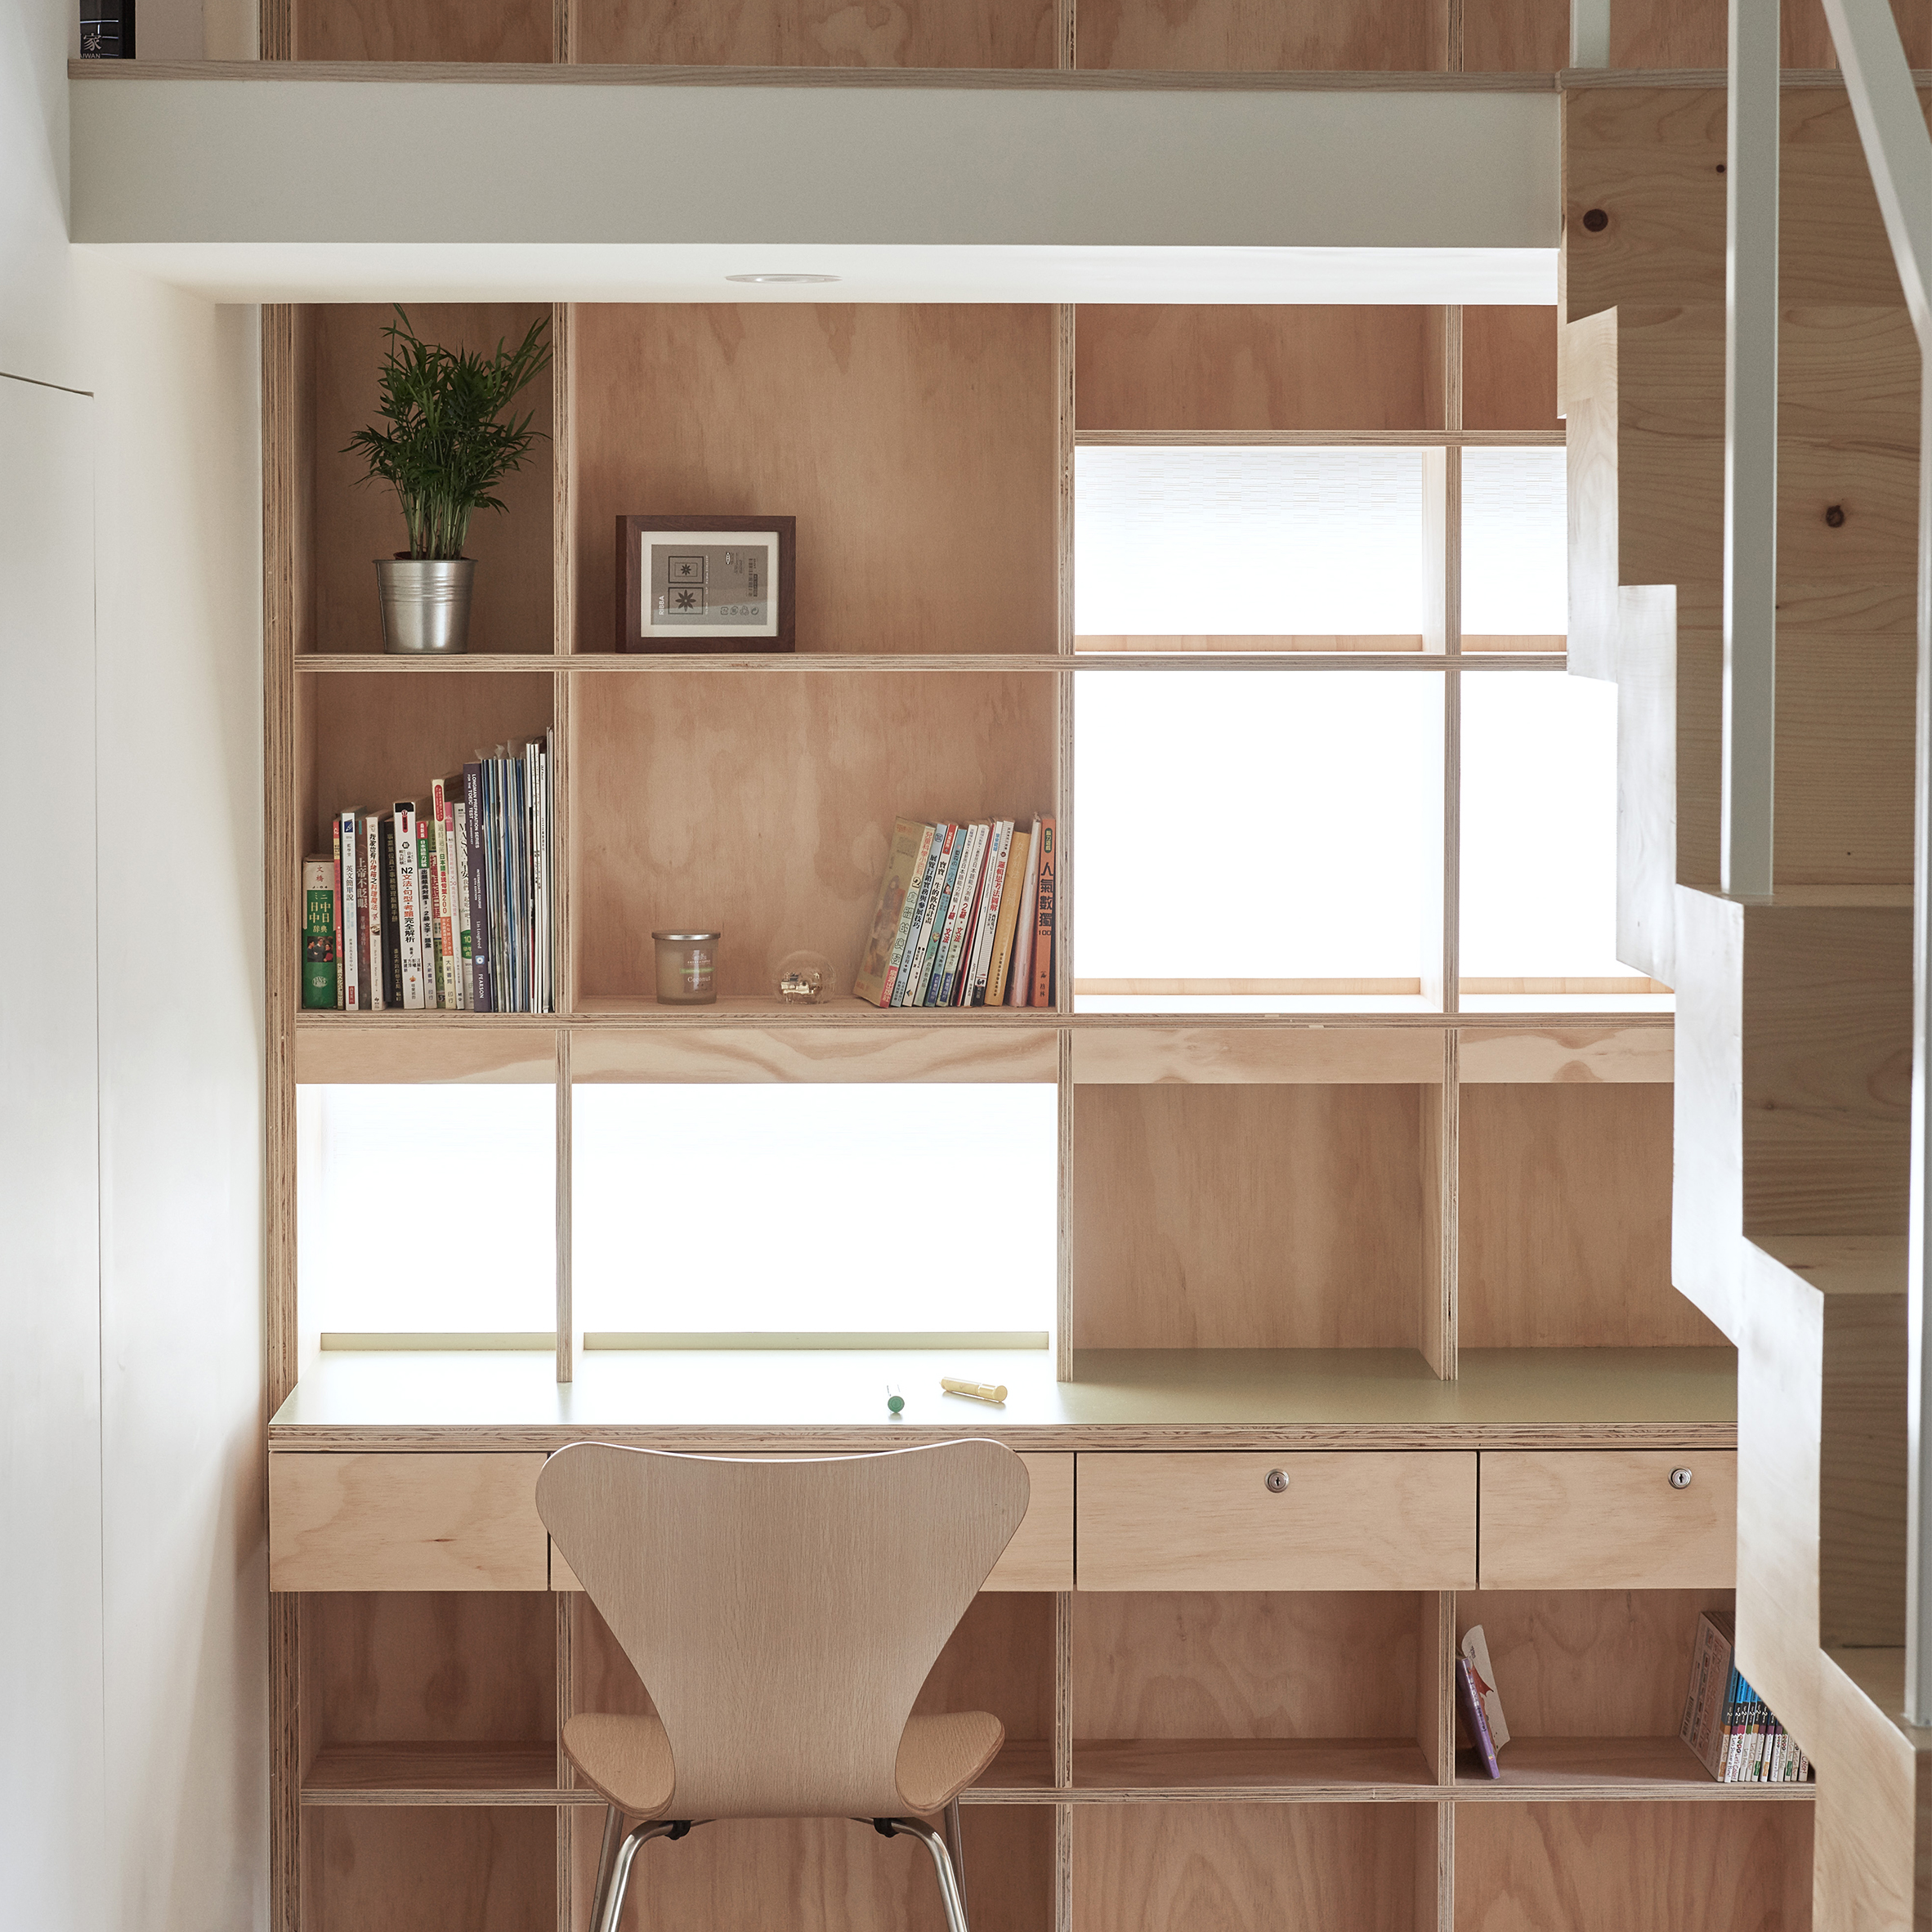 space design furniture. storage design dezeen space furniture p